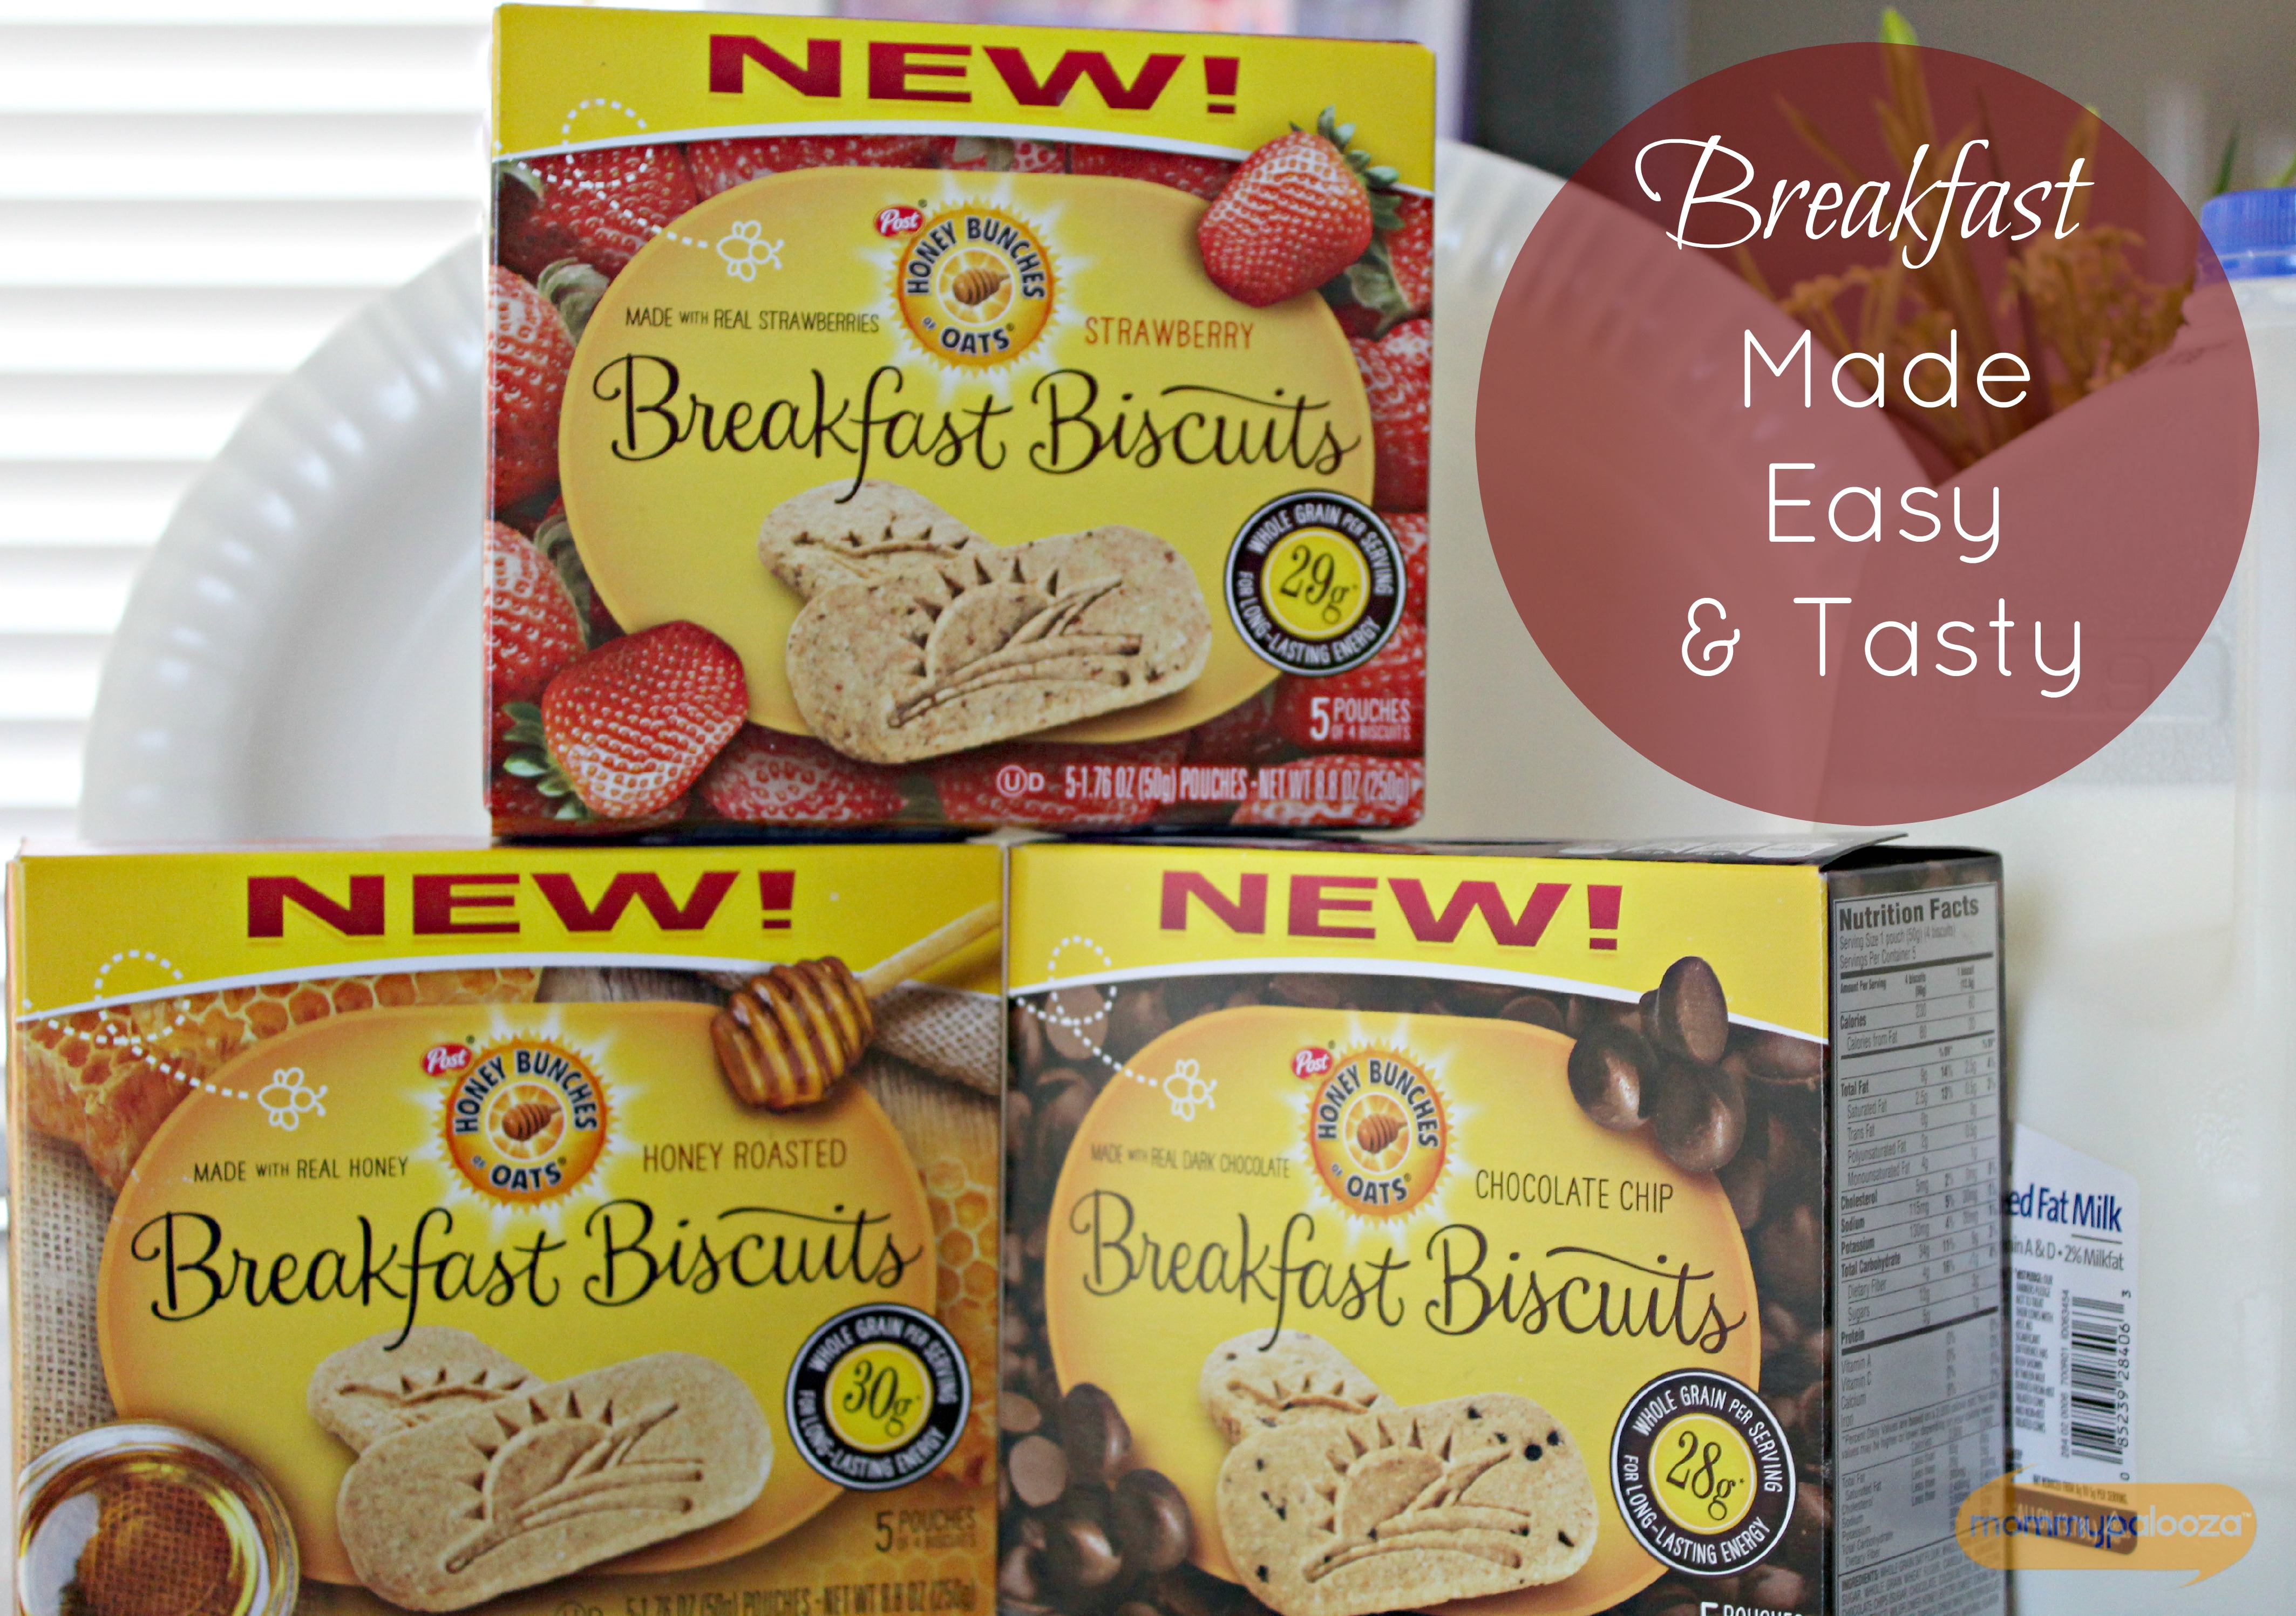 Breakfast Made Easy | Honey Bunches of Oats Breakfast Biscuits #GalletitasHBOats